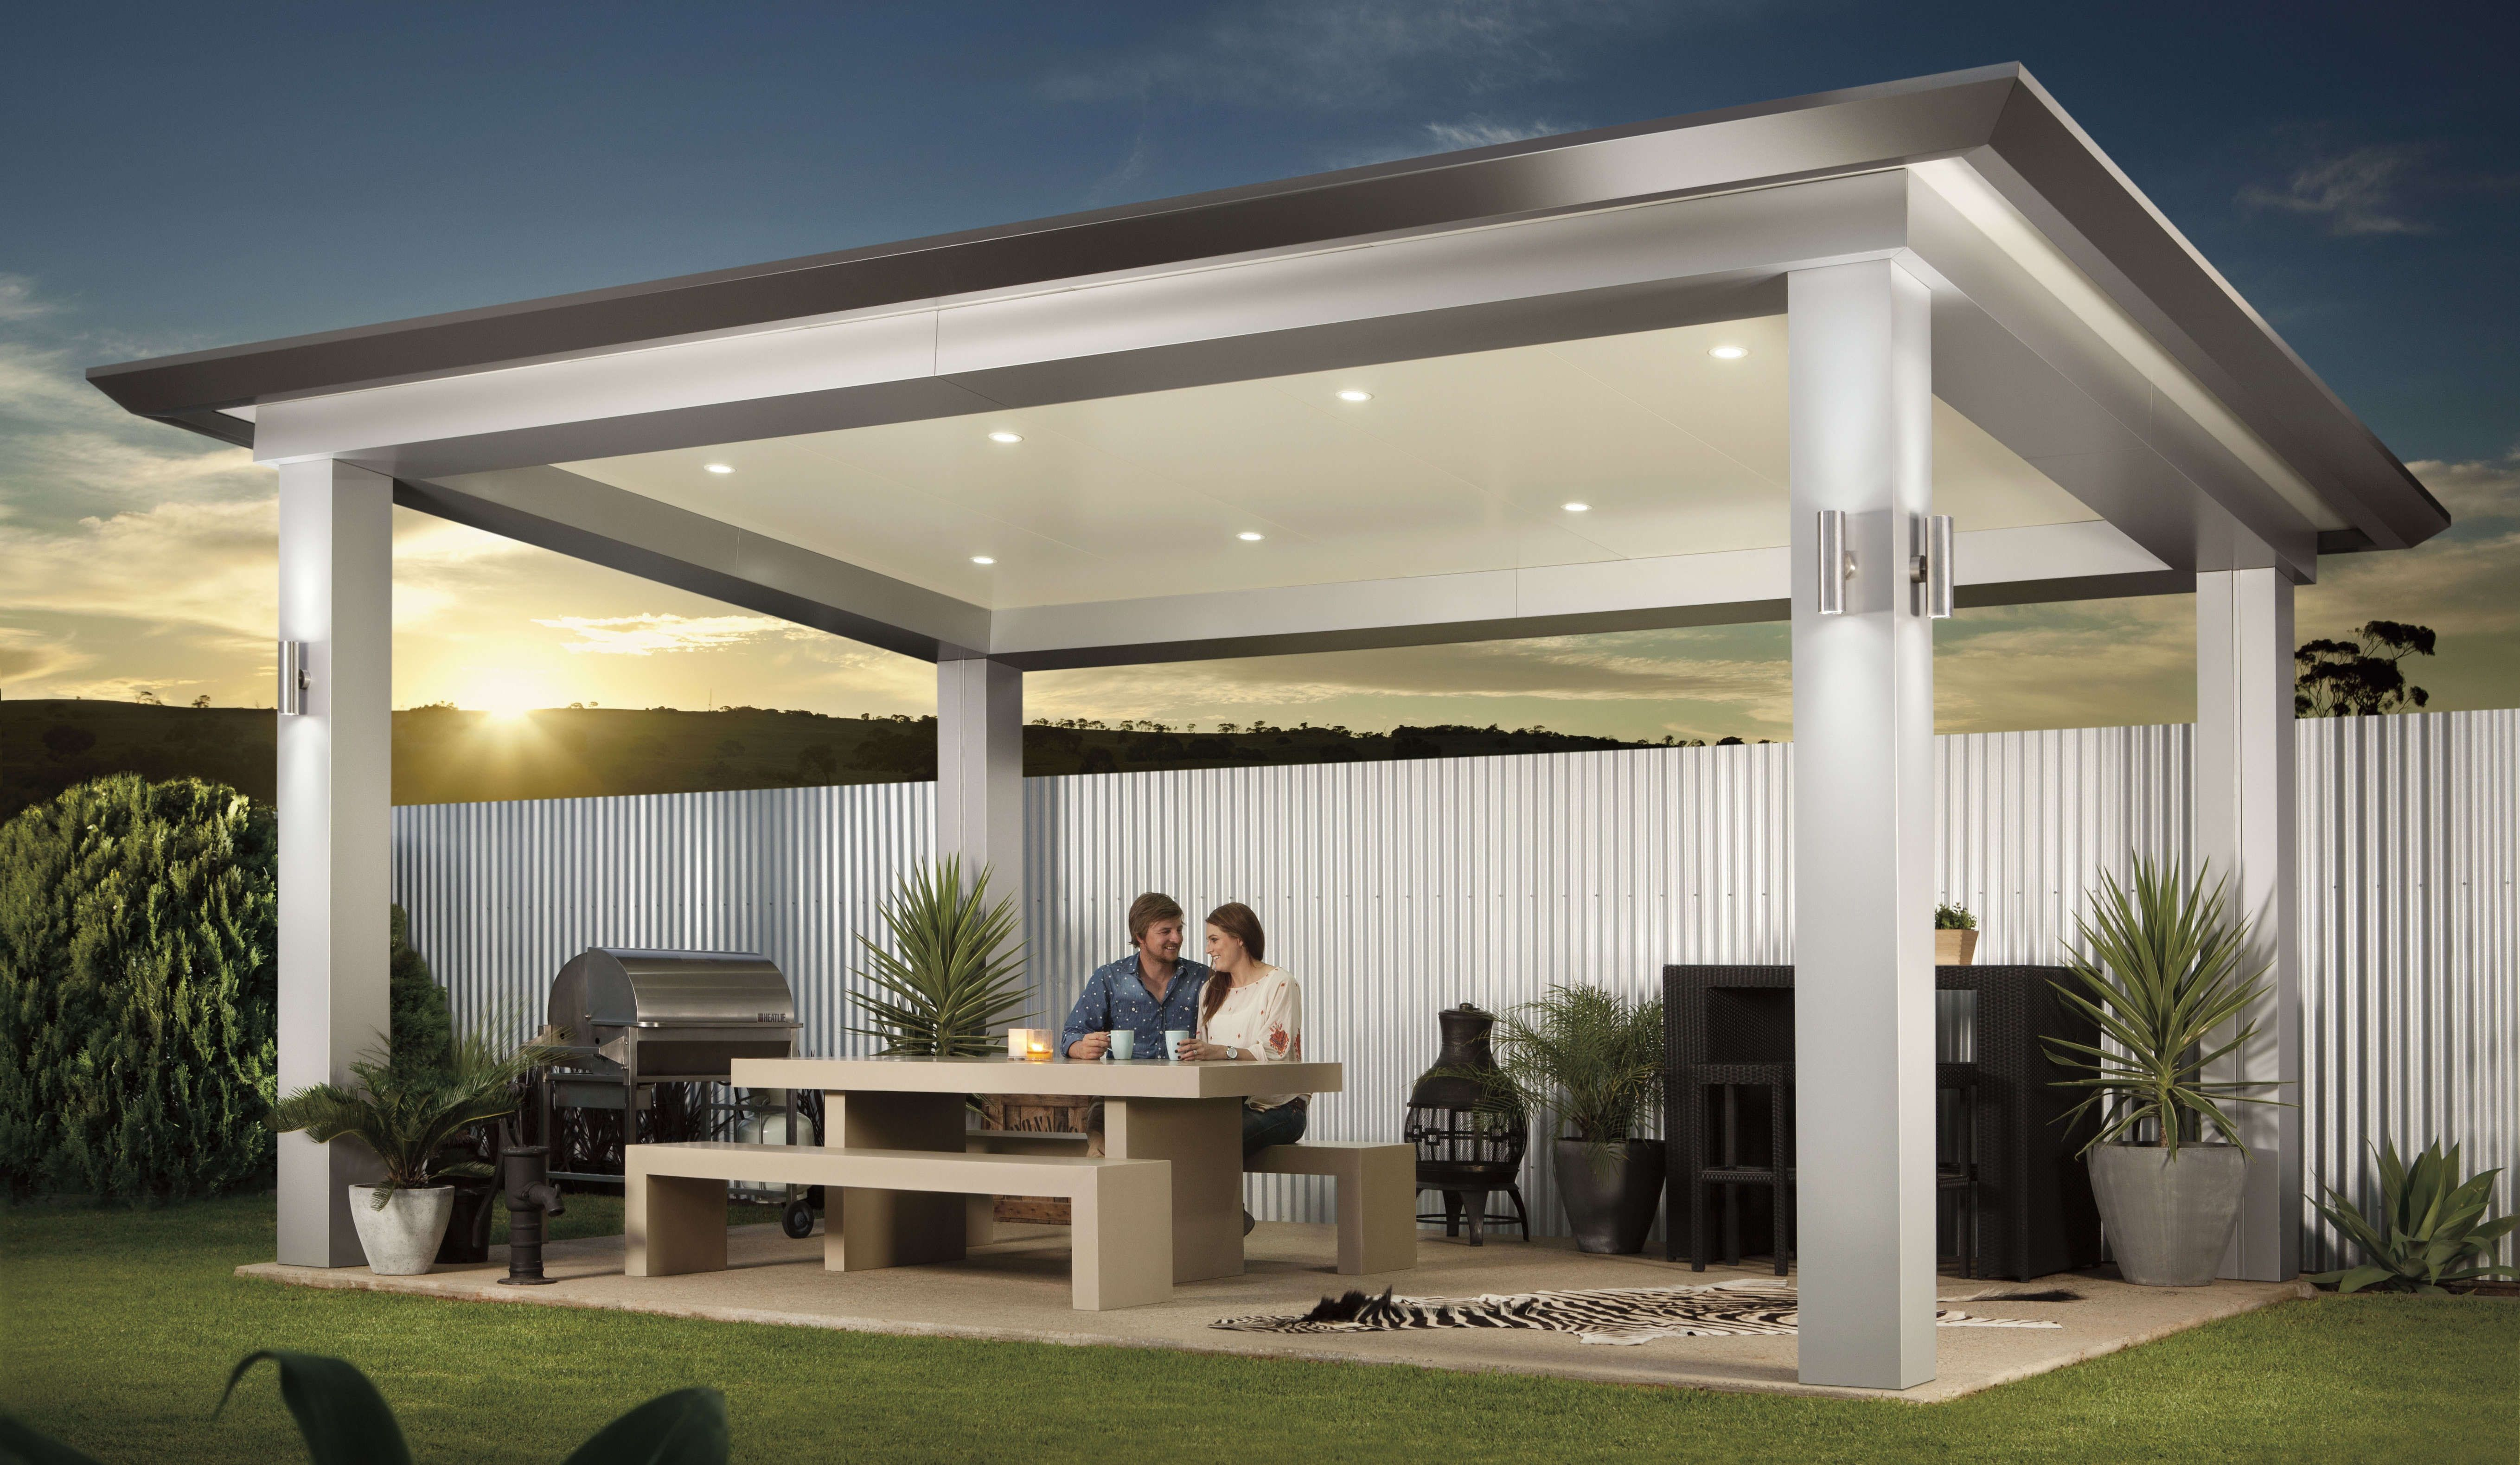 pavilion style kit homes google search outdoor living